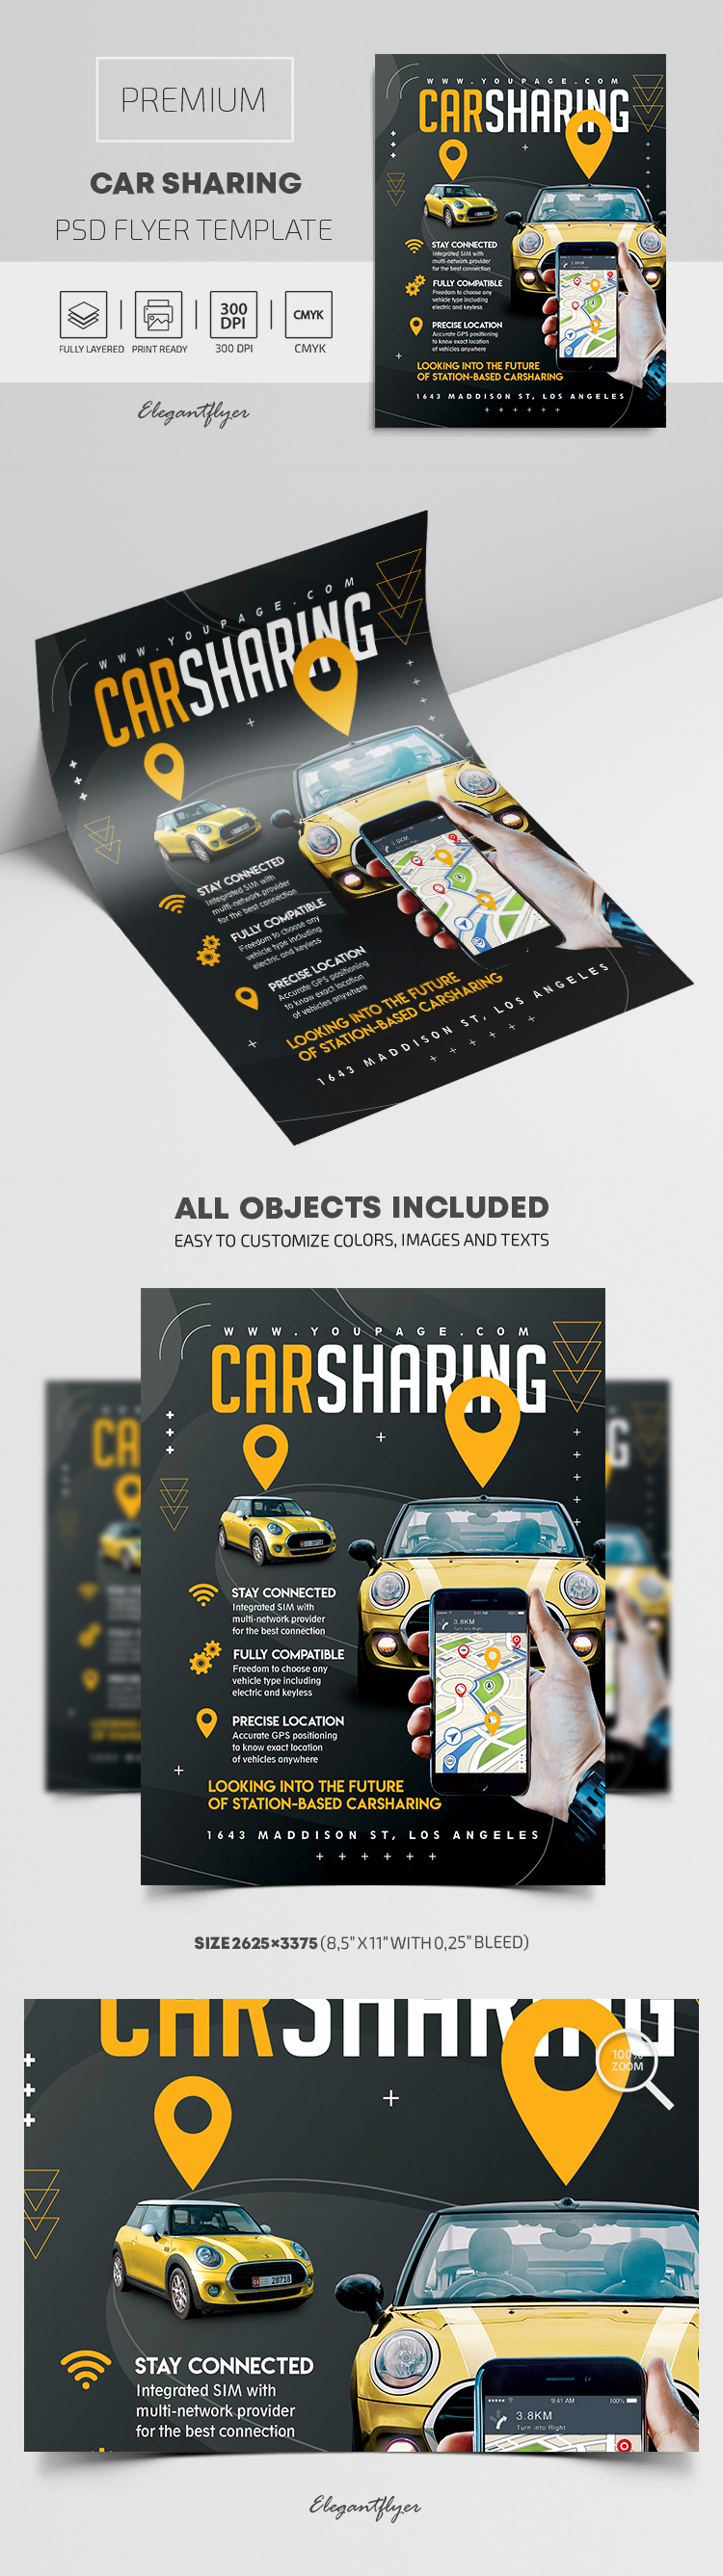 Car Sharing – Premium PSD Flyer Template